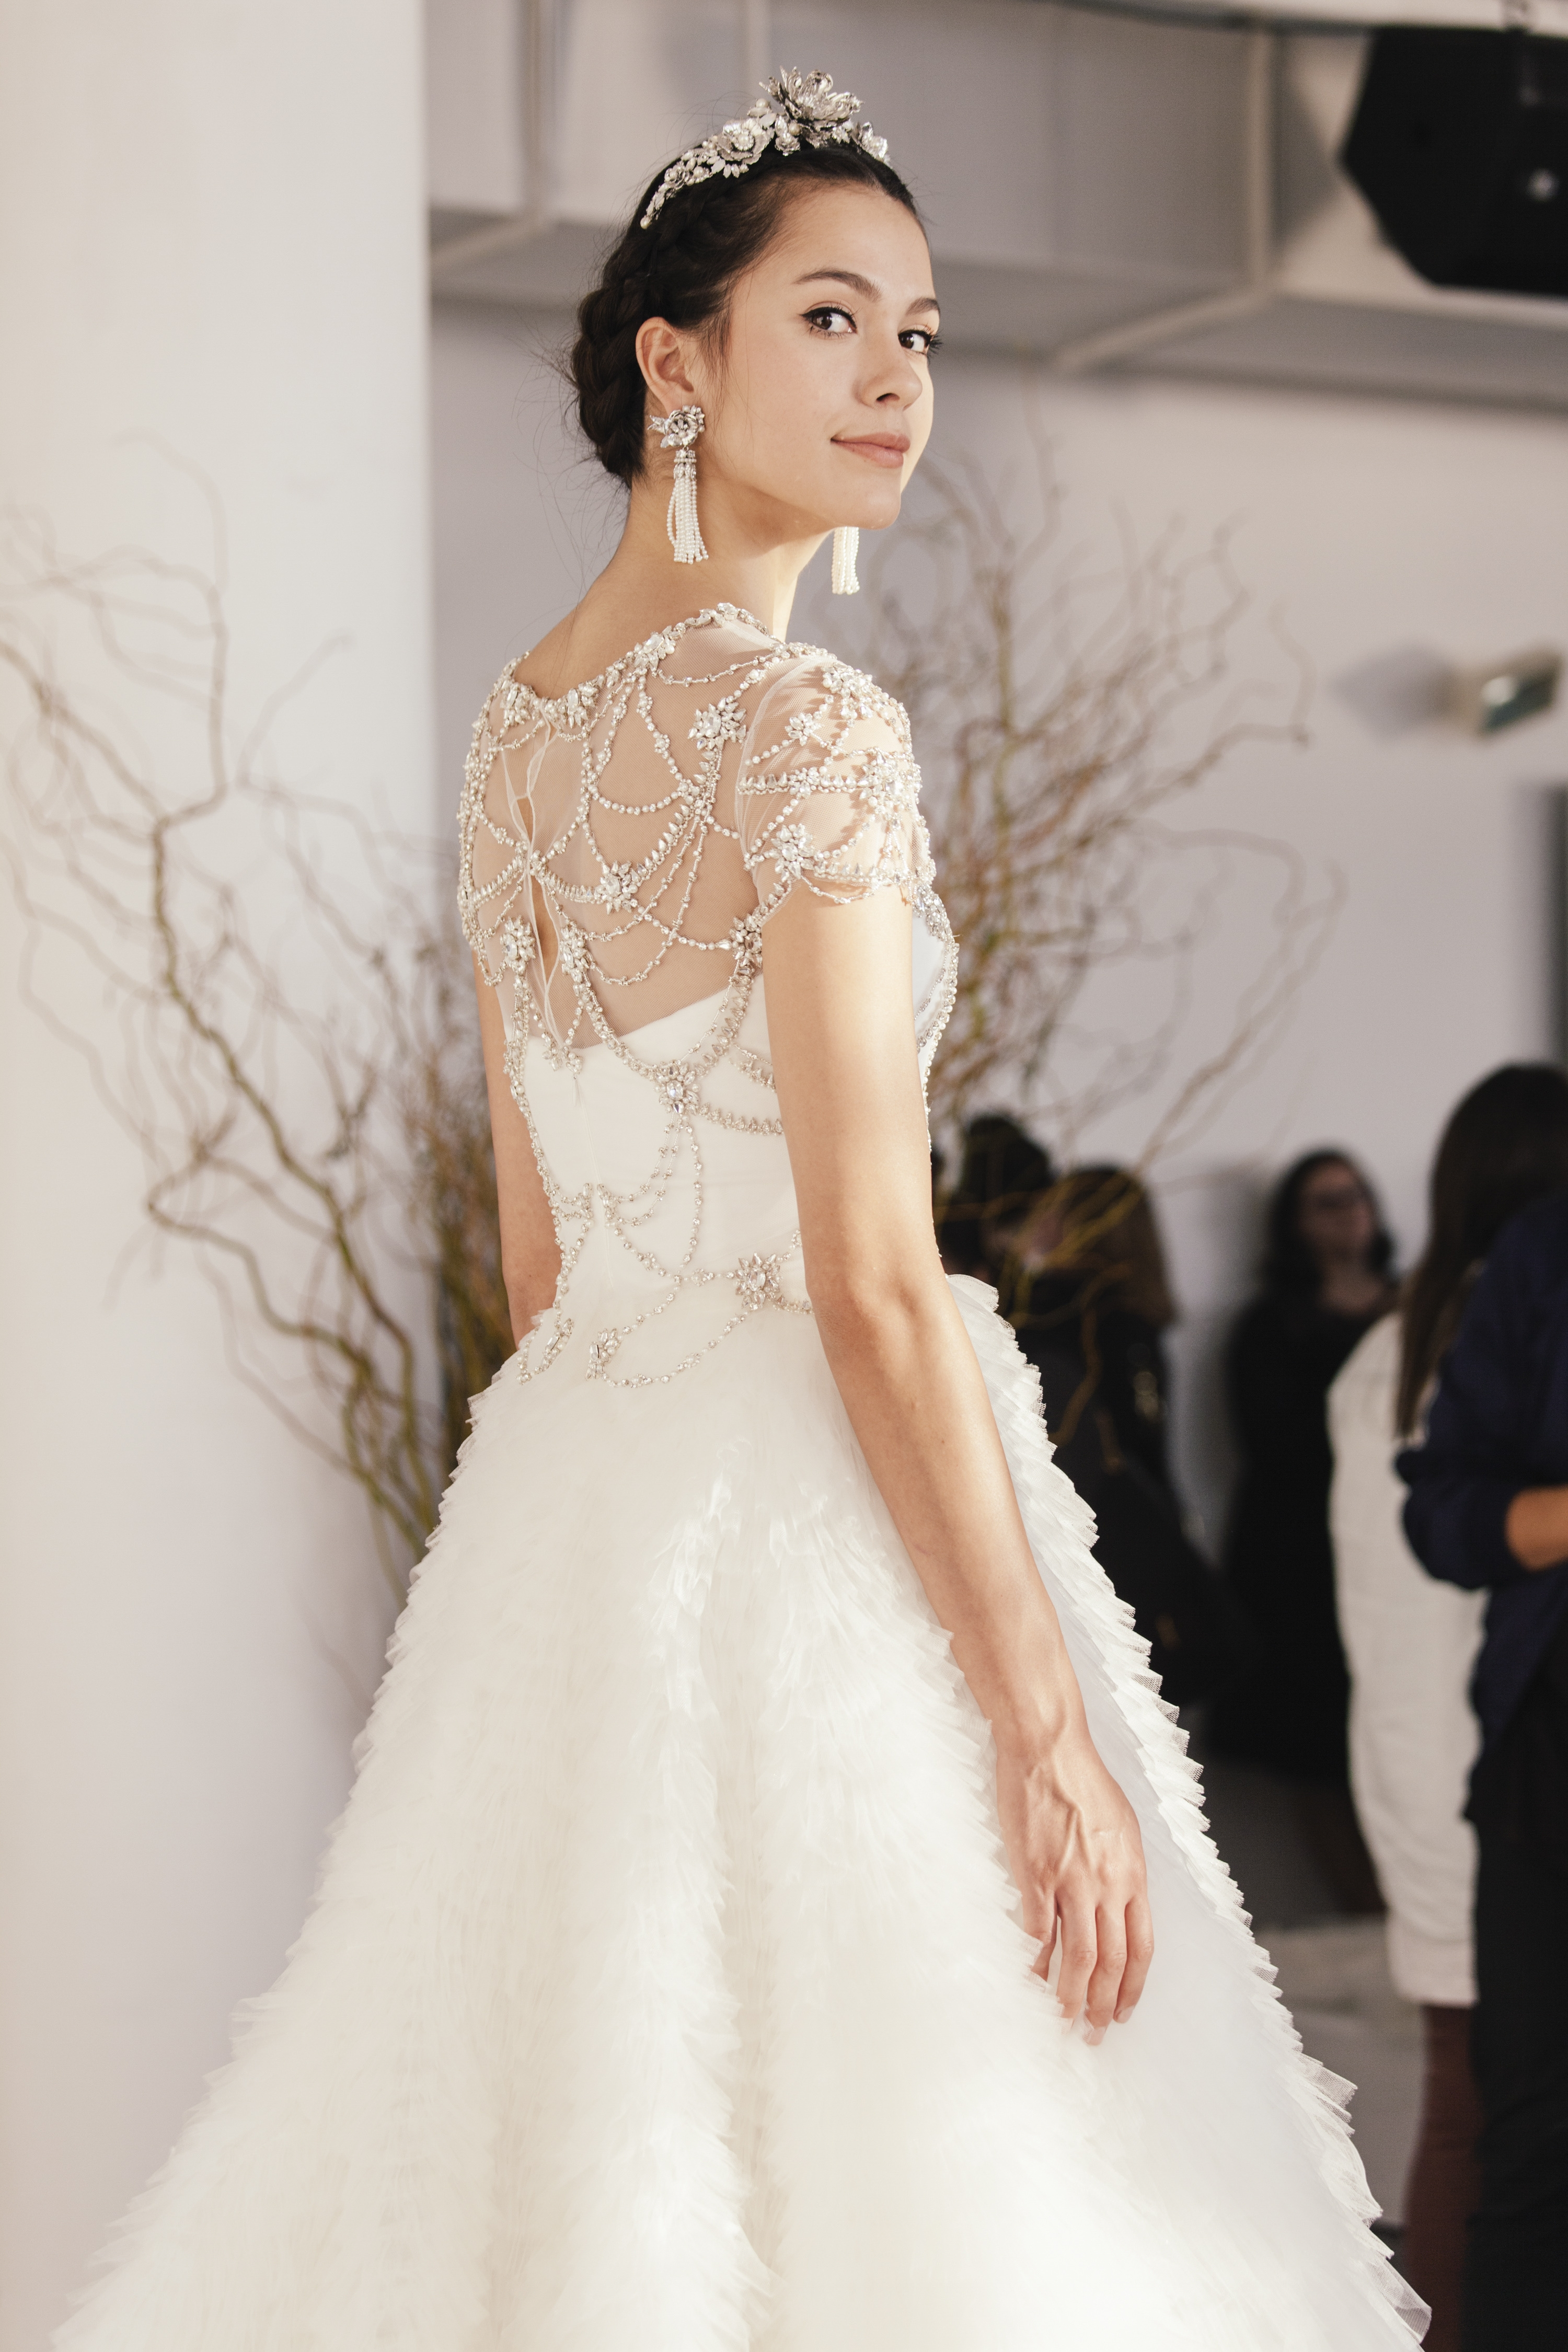 A model wears a cap-sleeve dress covered in faux gems during a bridal presentation in New York. (New York Times)